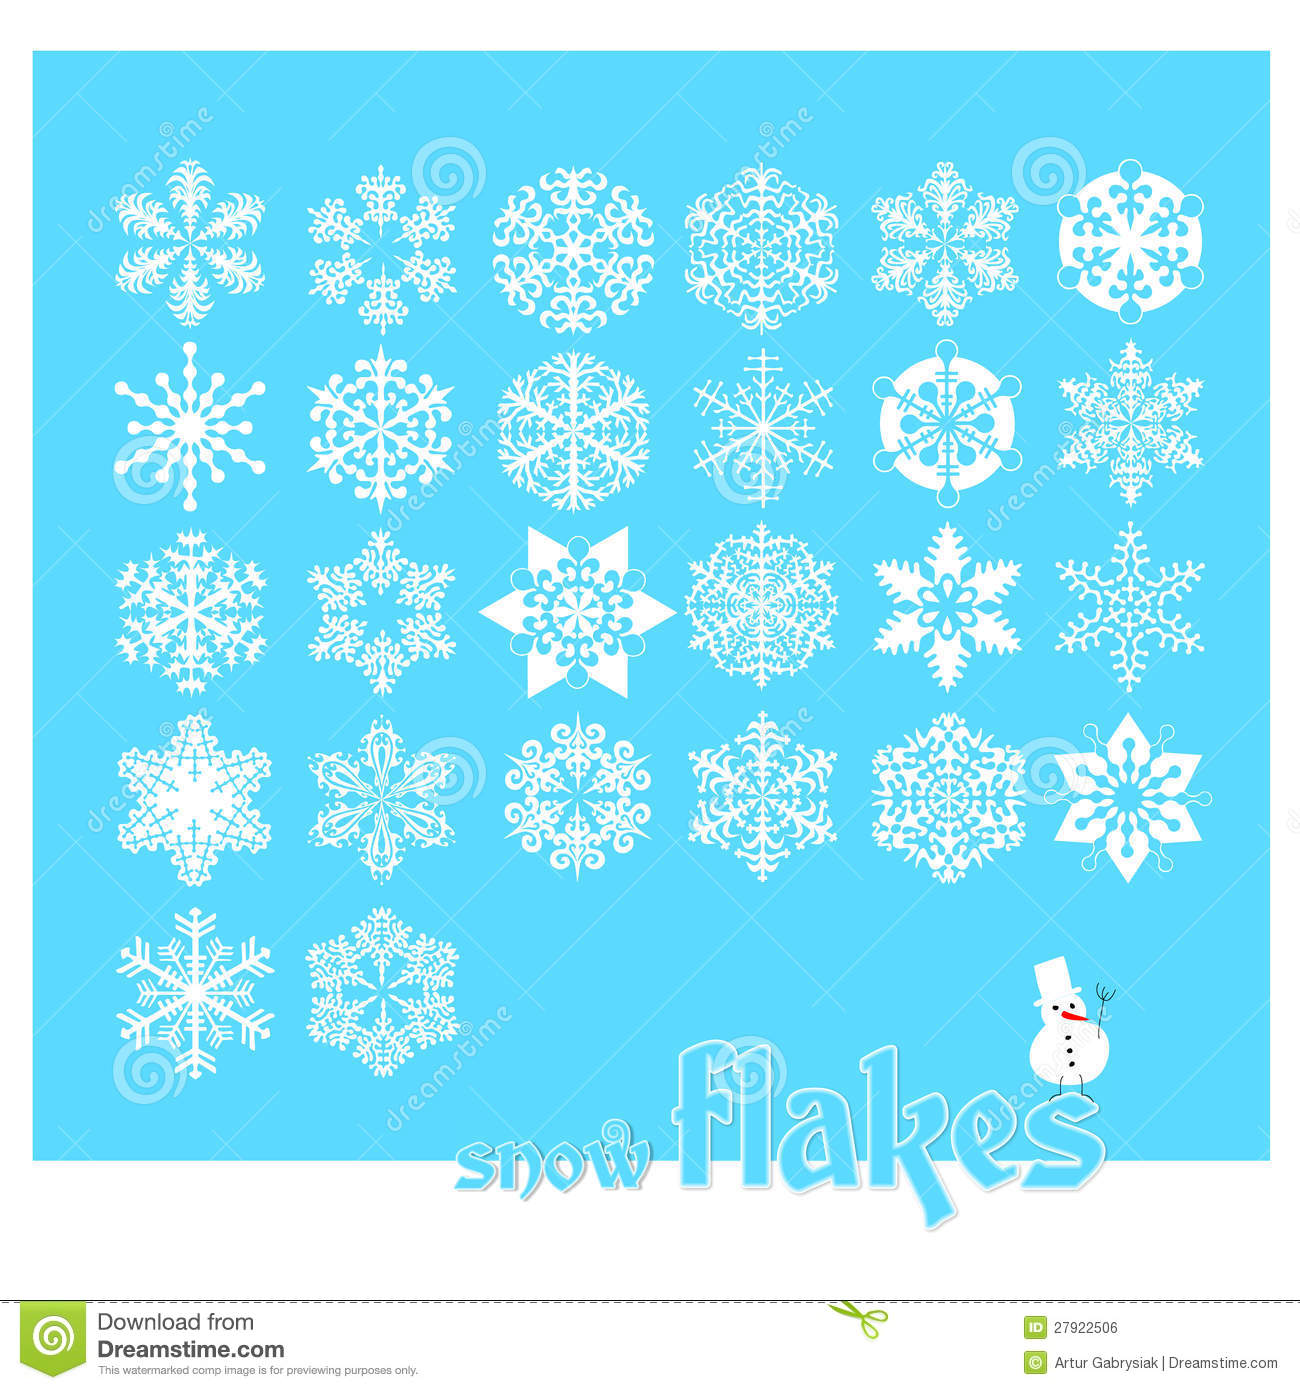 no more snow clipart - photo #13